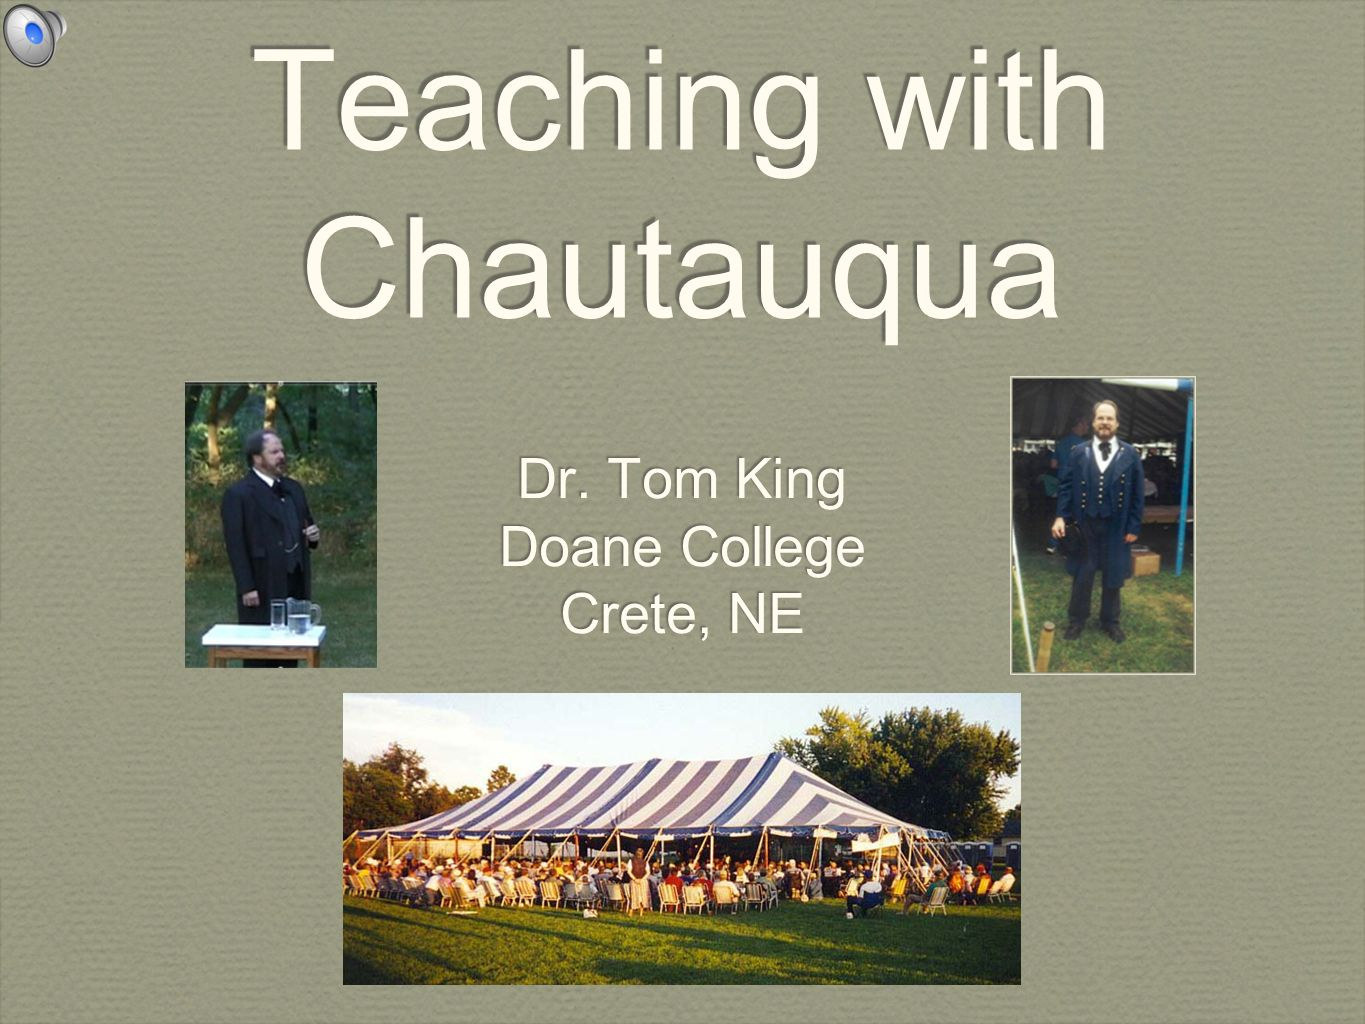 Teaching with Chautauqua Dr. Tom King Doane College Crete, NE Dr. Tom King Doane College Crete, NE